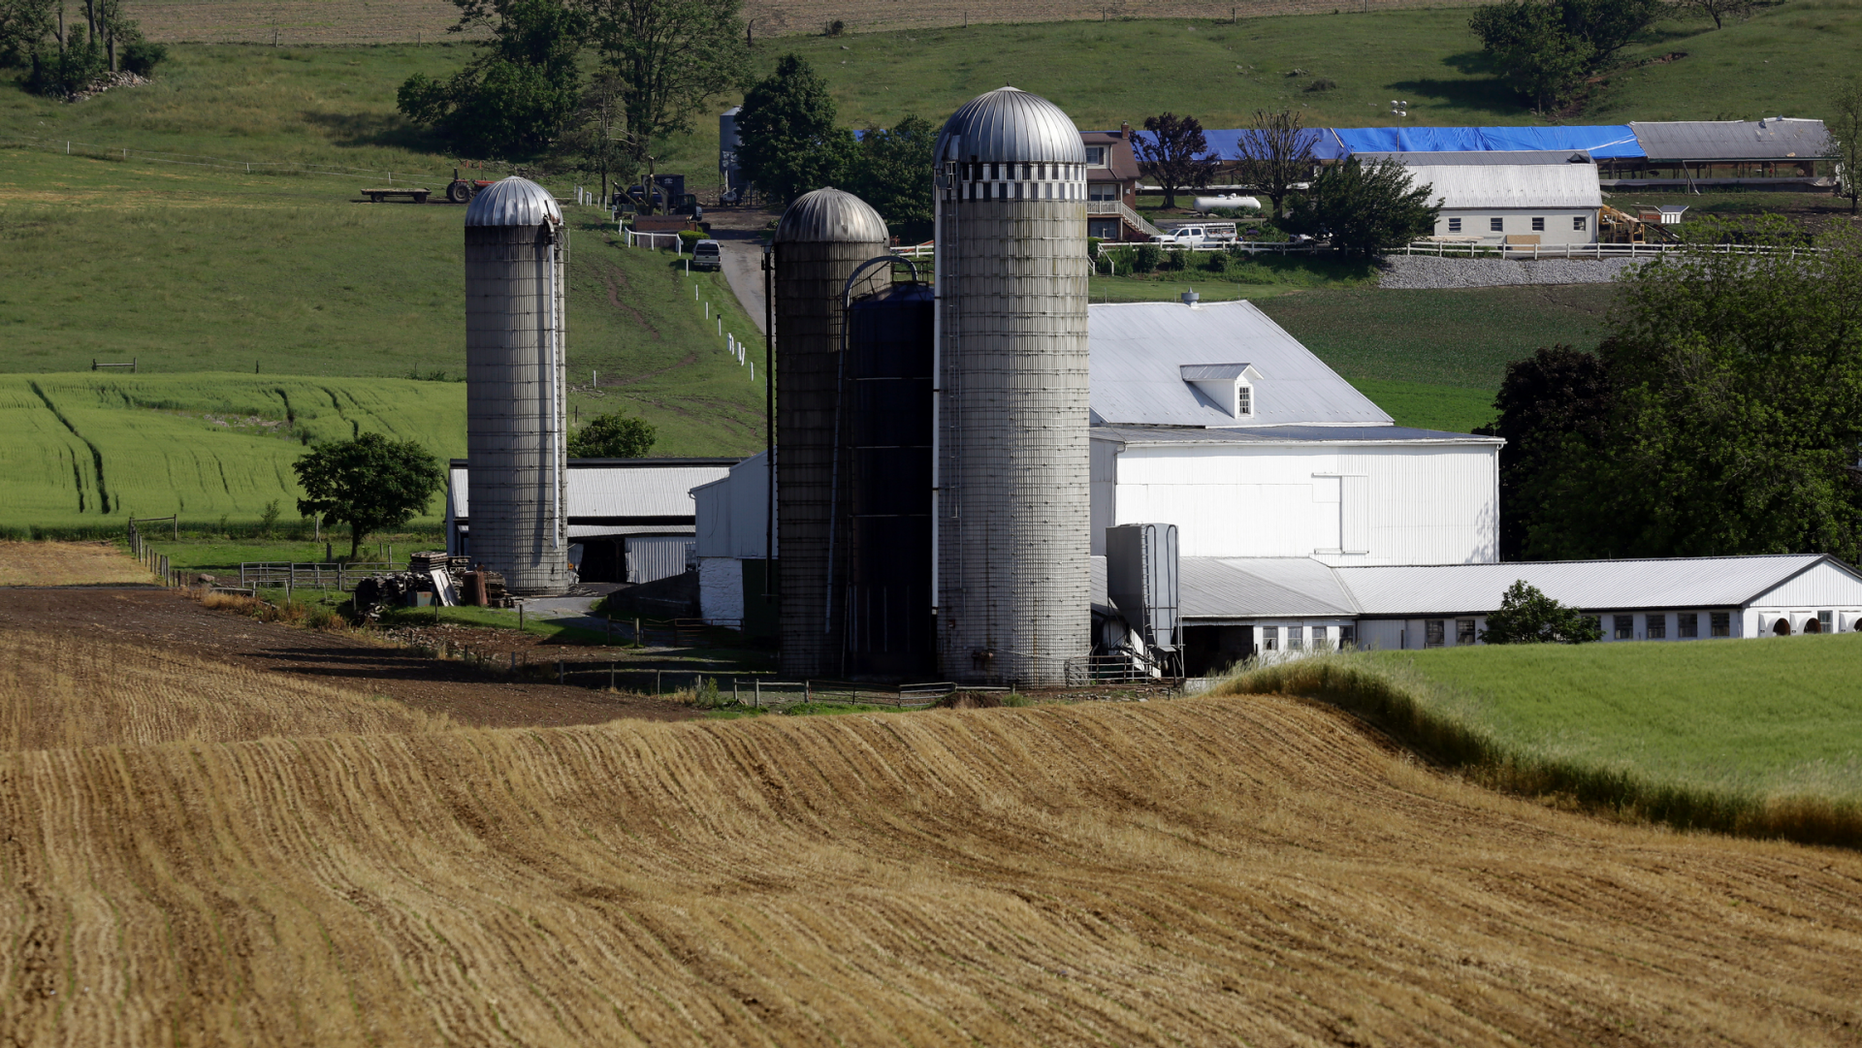 FILE- This May 29, 2019, file photo shows a farm outside Morgantown, Pa. On Tuesday, June 11, the Labor Department reports on U.S. producer price inflation in May. (AP Photo/Jacqueline Larma, File)